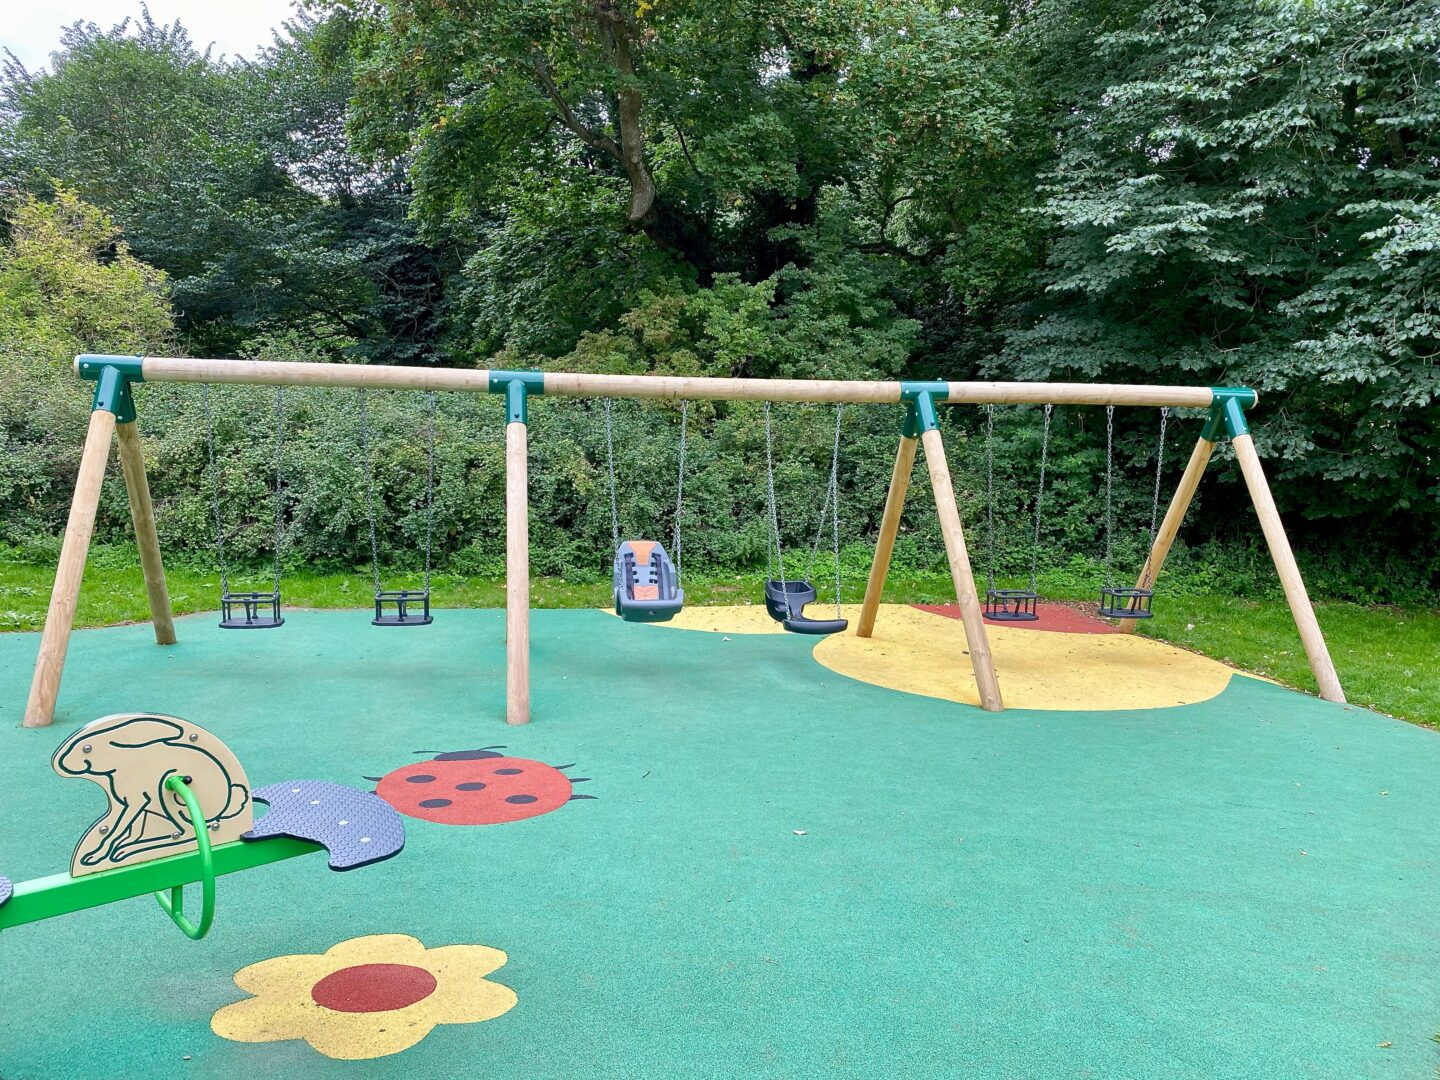 A swingset showing some accessible seating